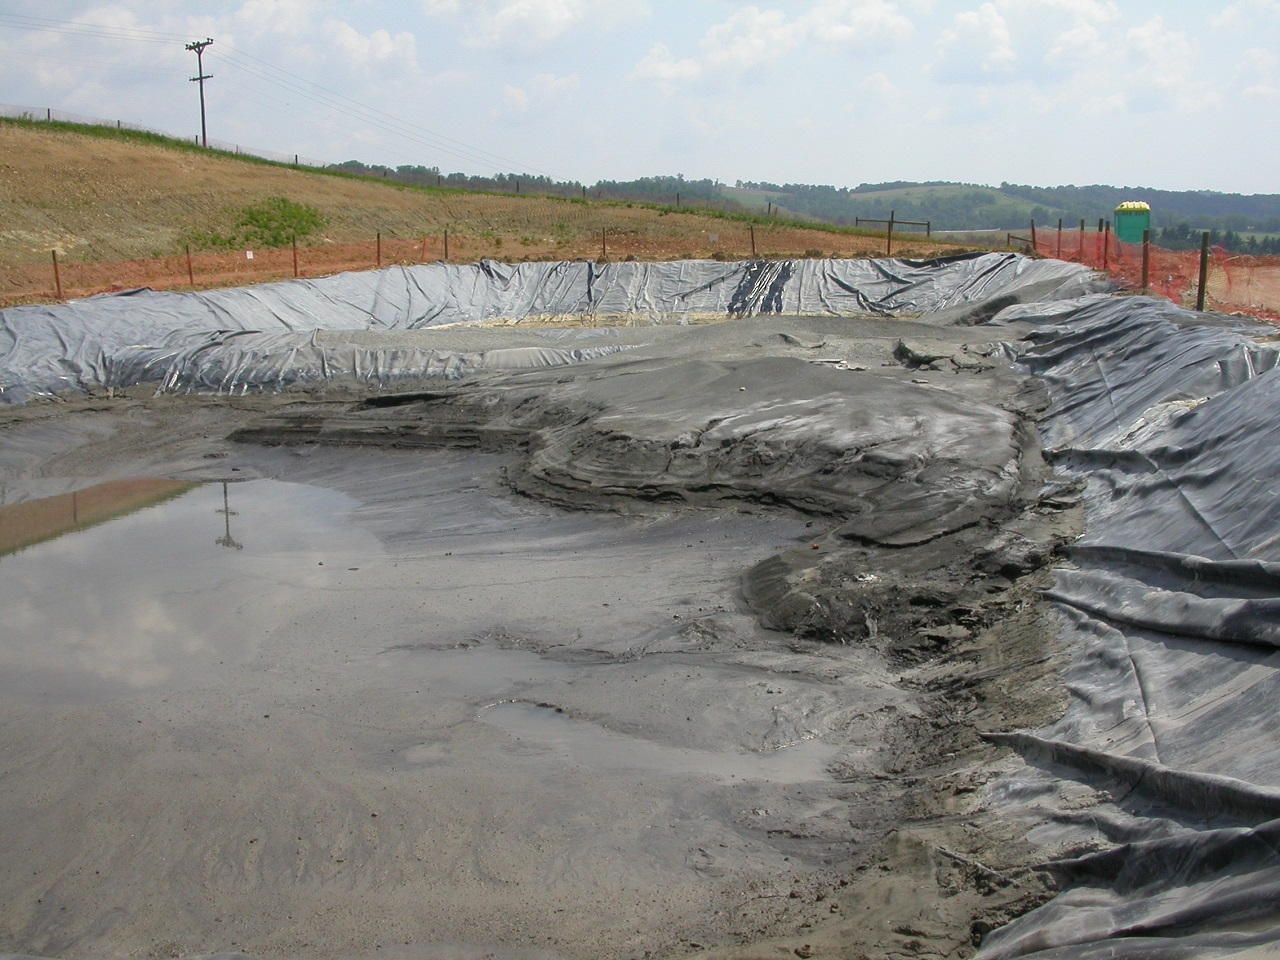 Forums on New Reports on the Health and Economic Impacts of Fracking in Pennsylvania16